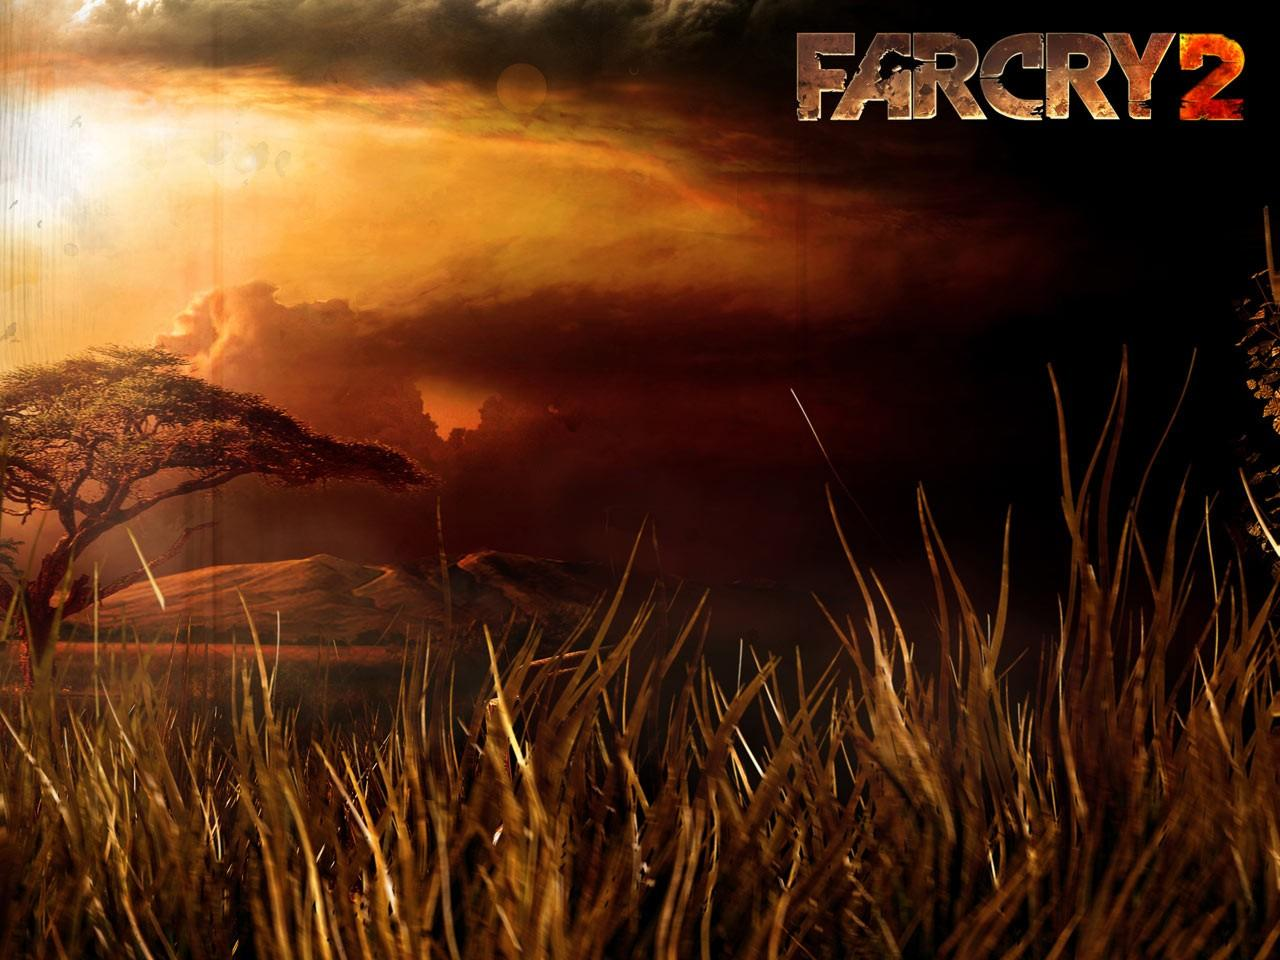 Free Download Video Game Far Cry 2 Wallpaper 1280x960 For Your